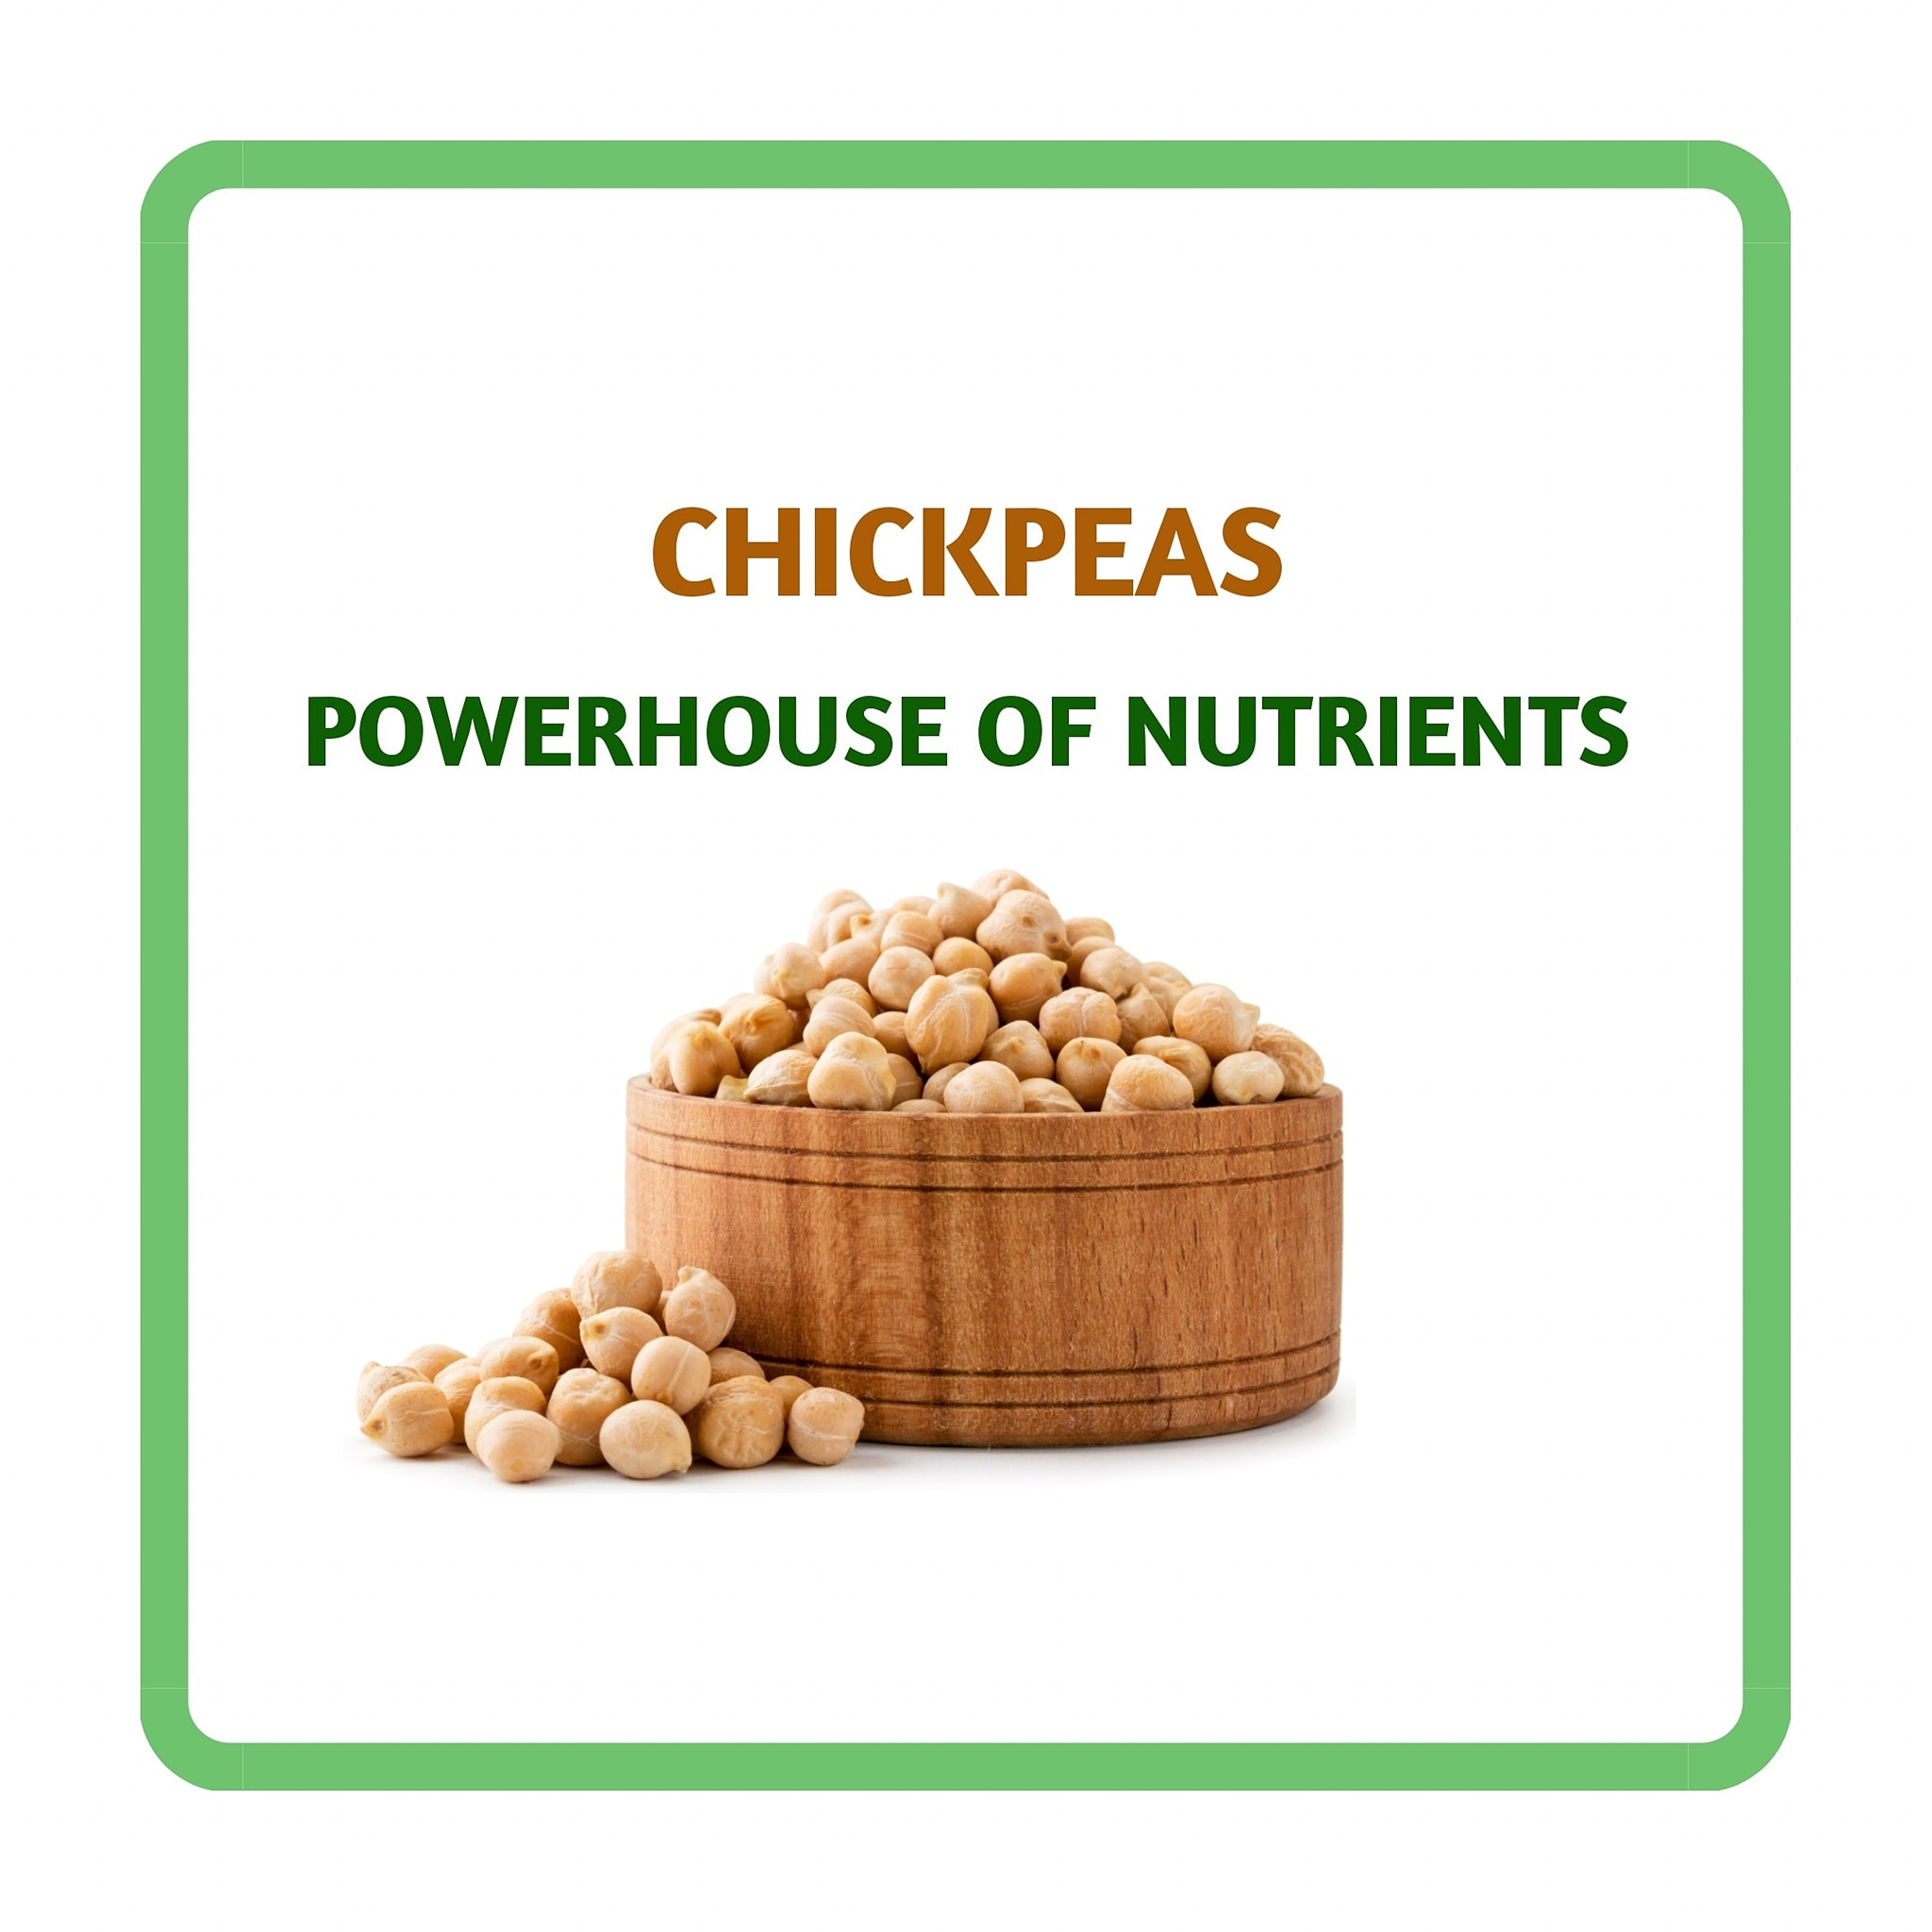 chickpeas the powerhouse of nutrients